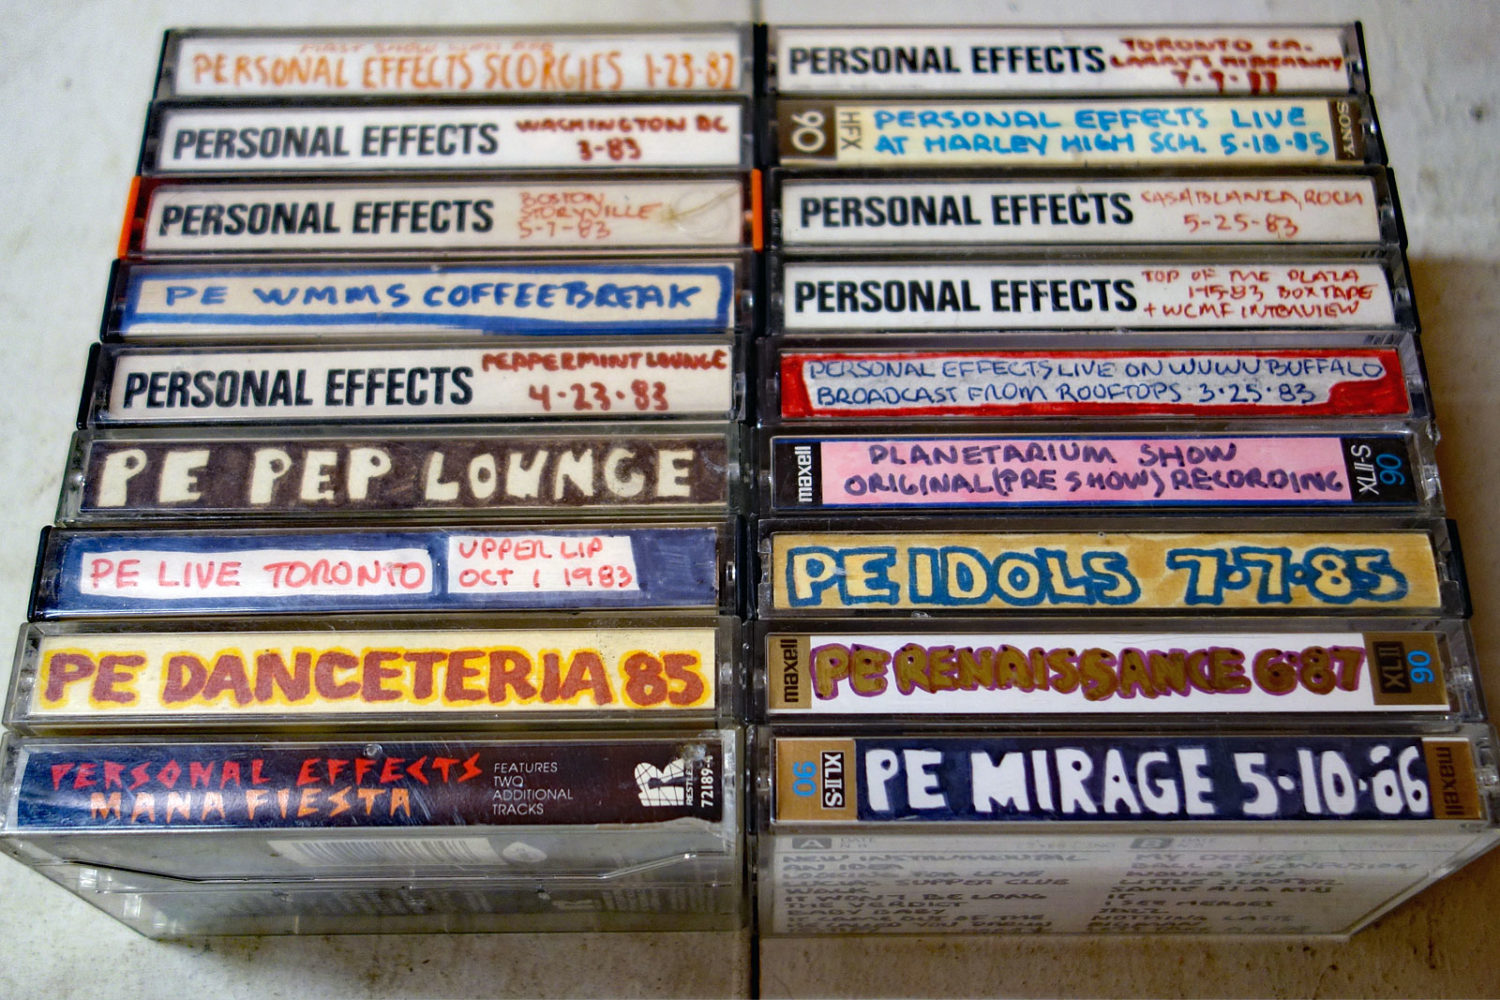 Personal Effects cassettes from the early 80s